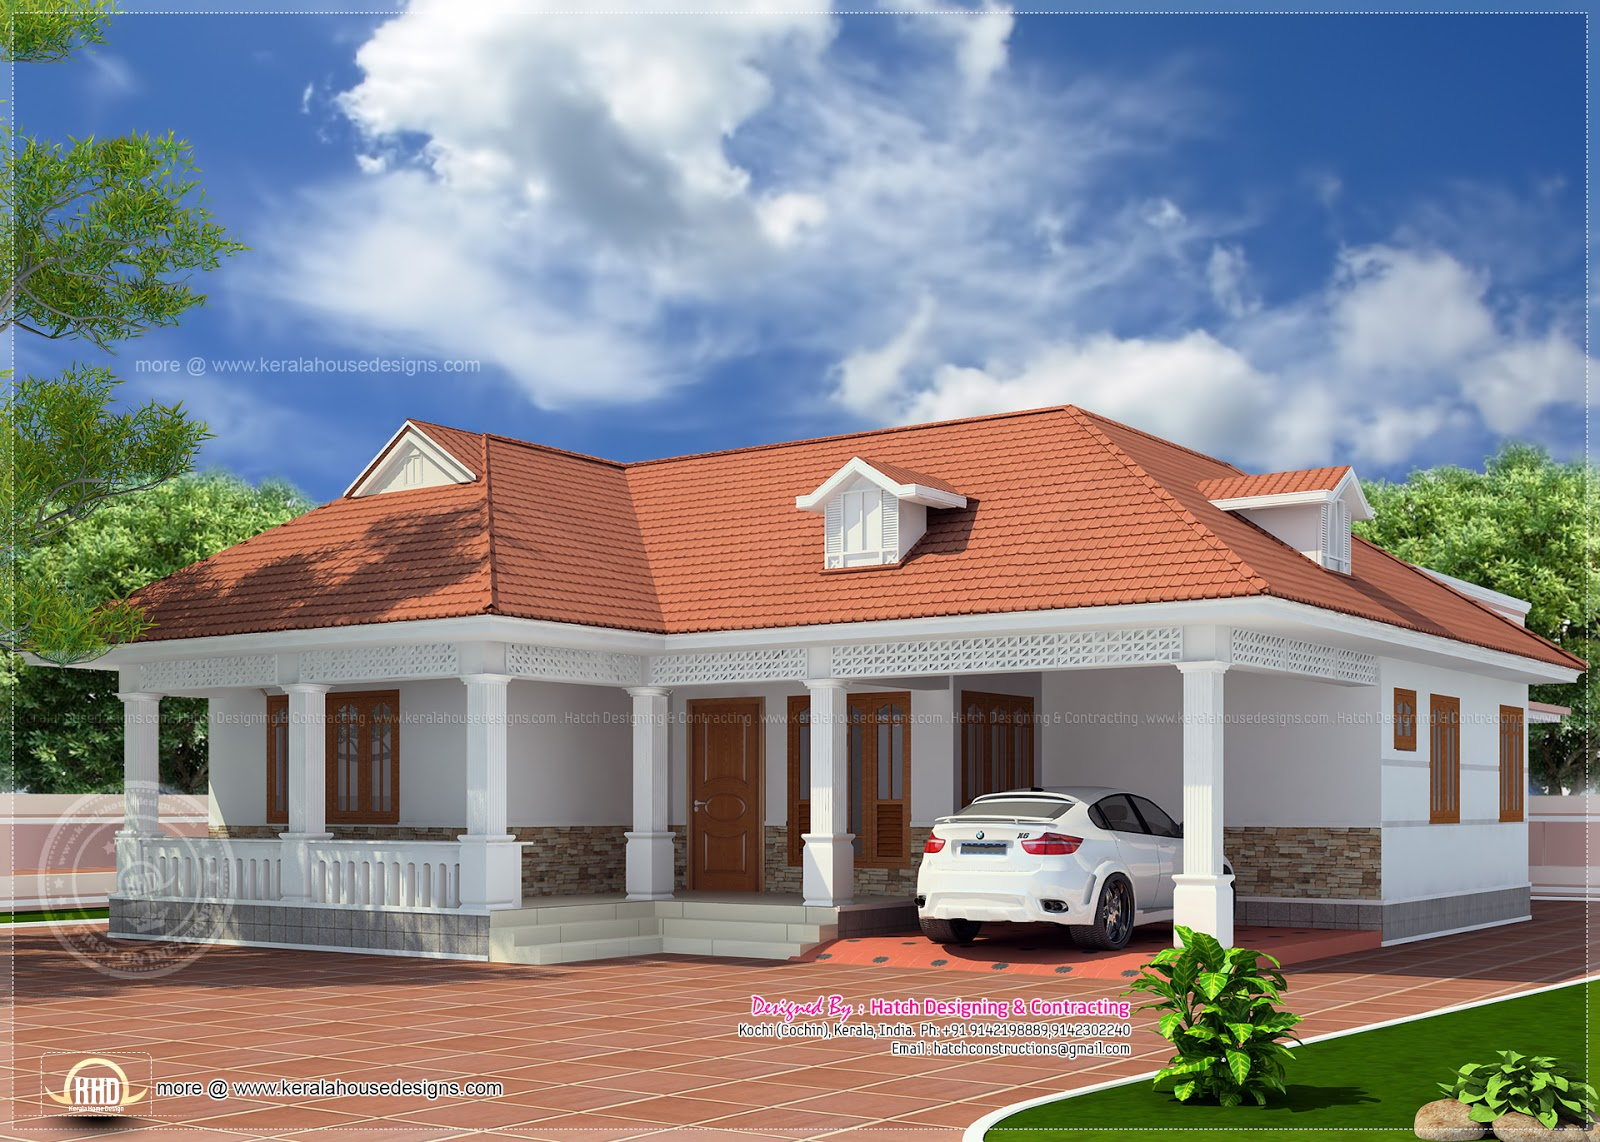 1850 kerala style home elevation kerala home for Kerala style home designs and elevations